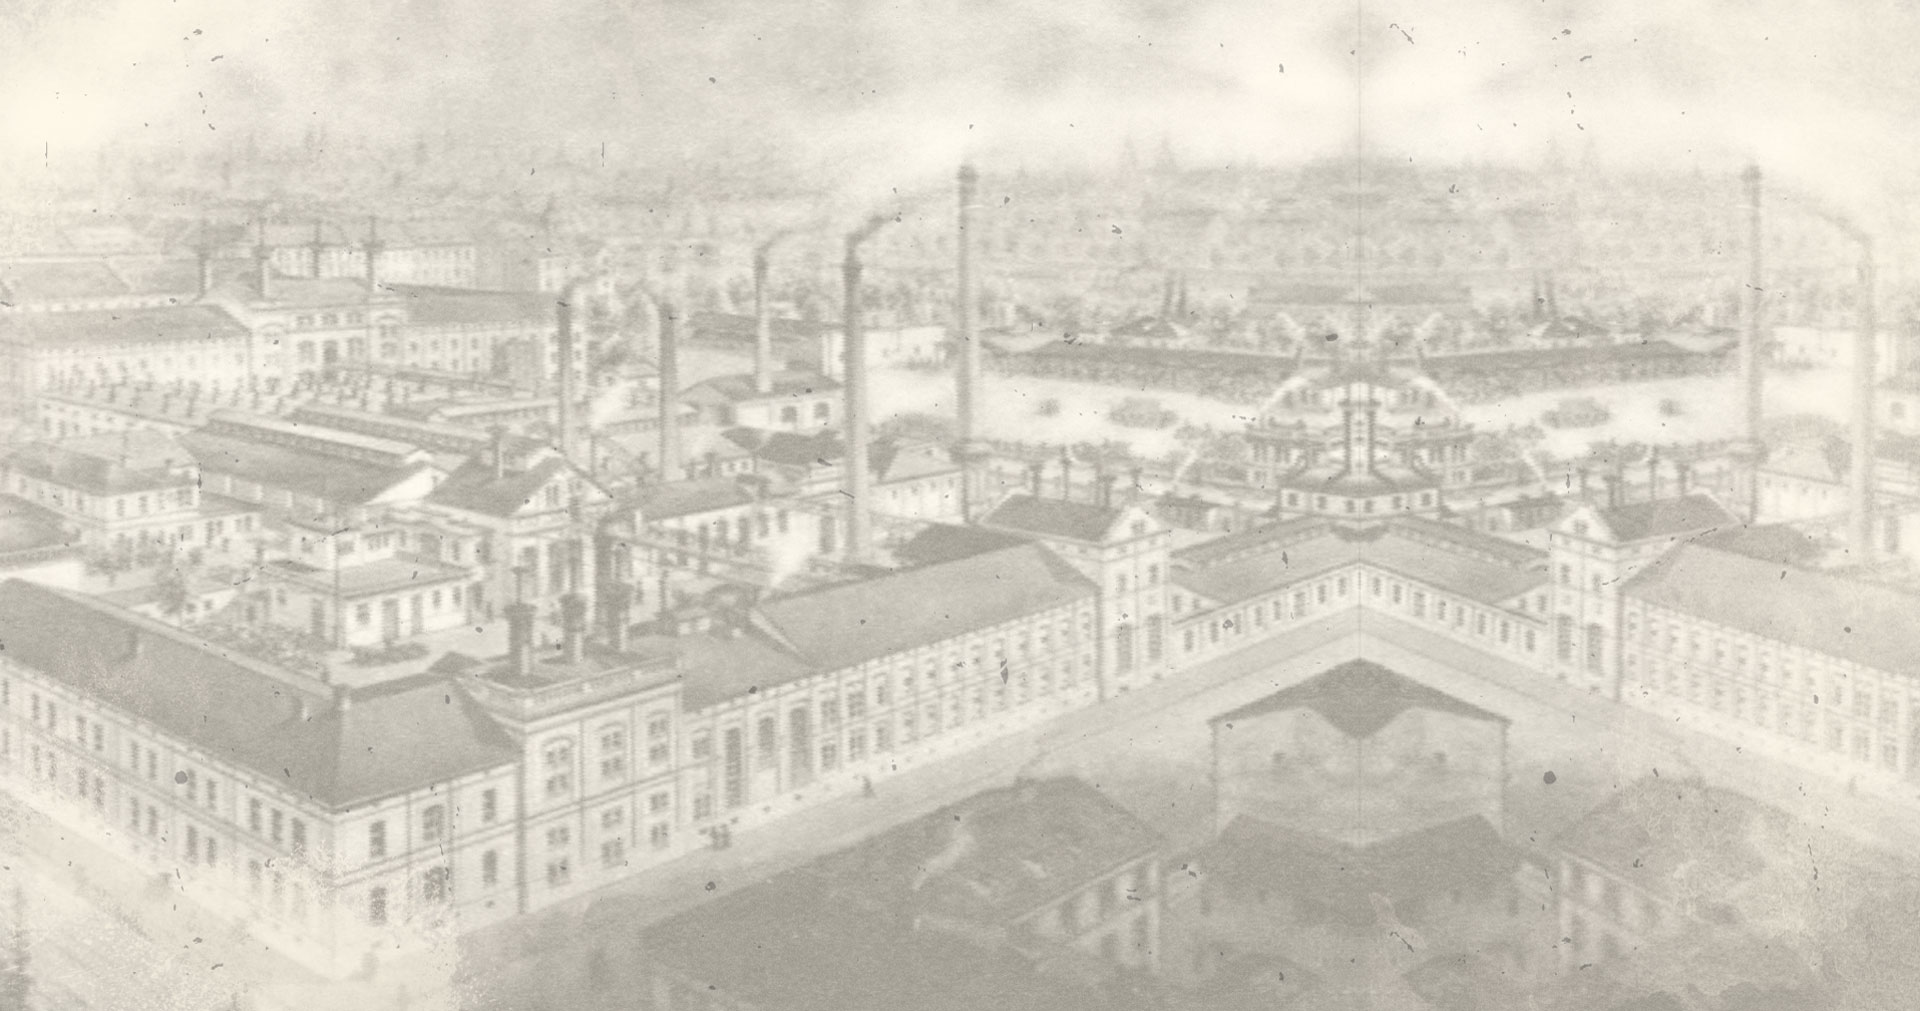 The first brewery